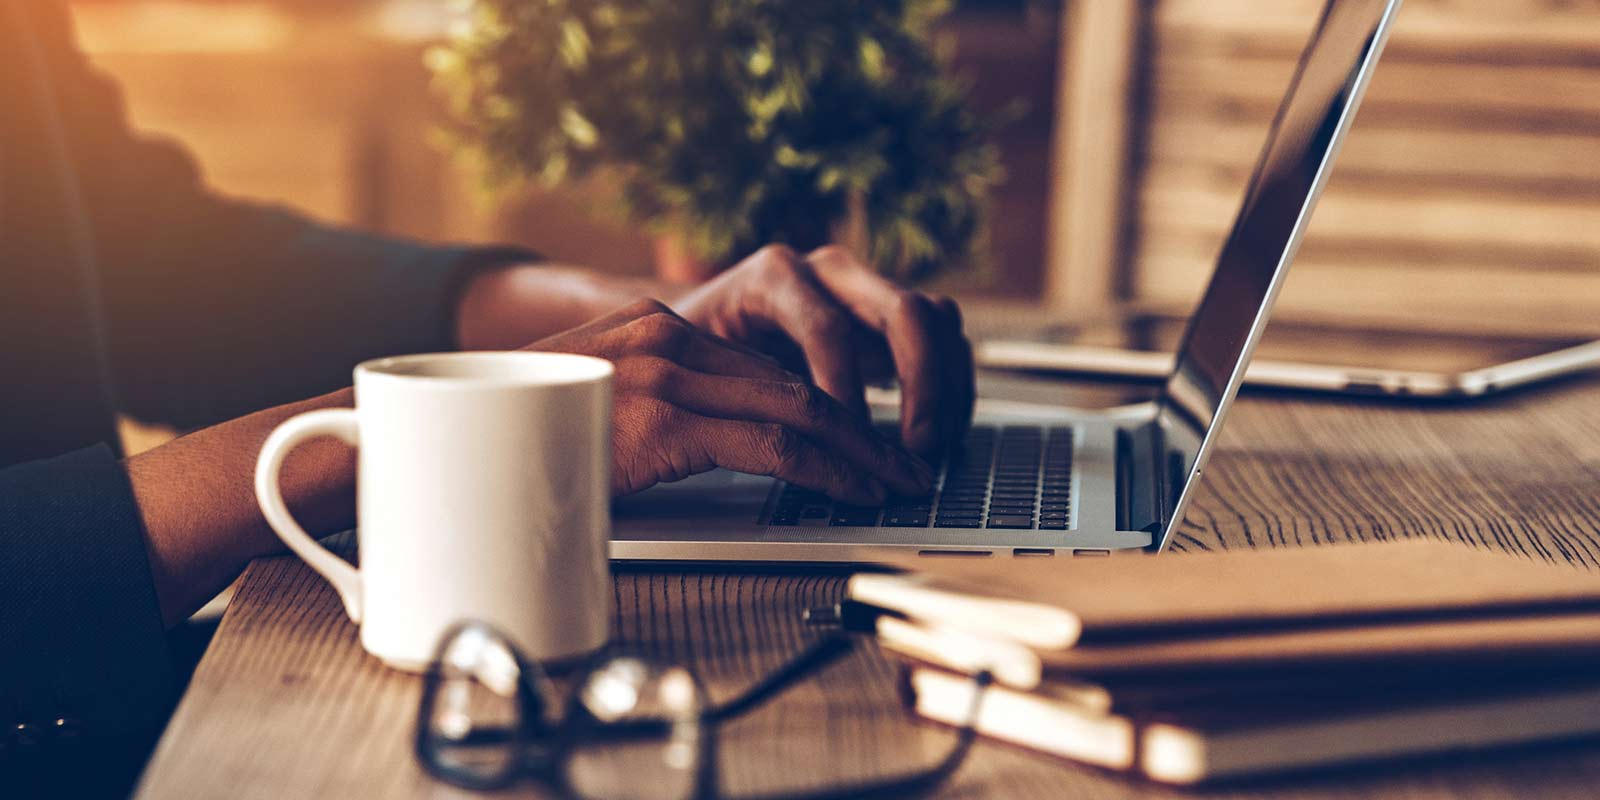 A man sitting at a table with a cup of coffee and a laptop.